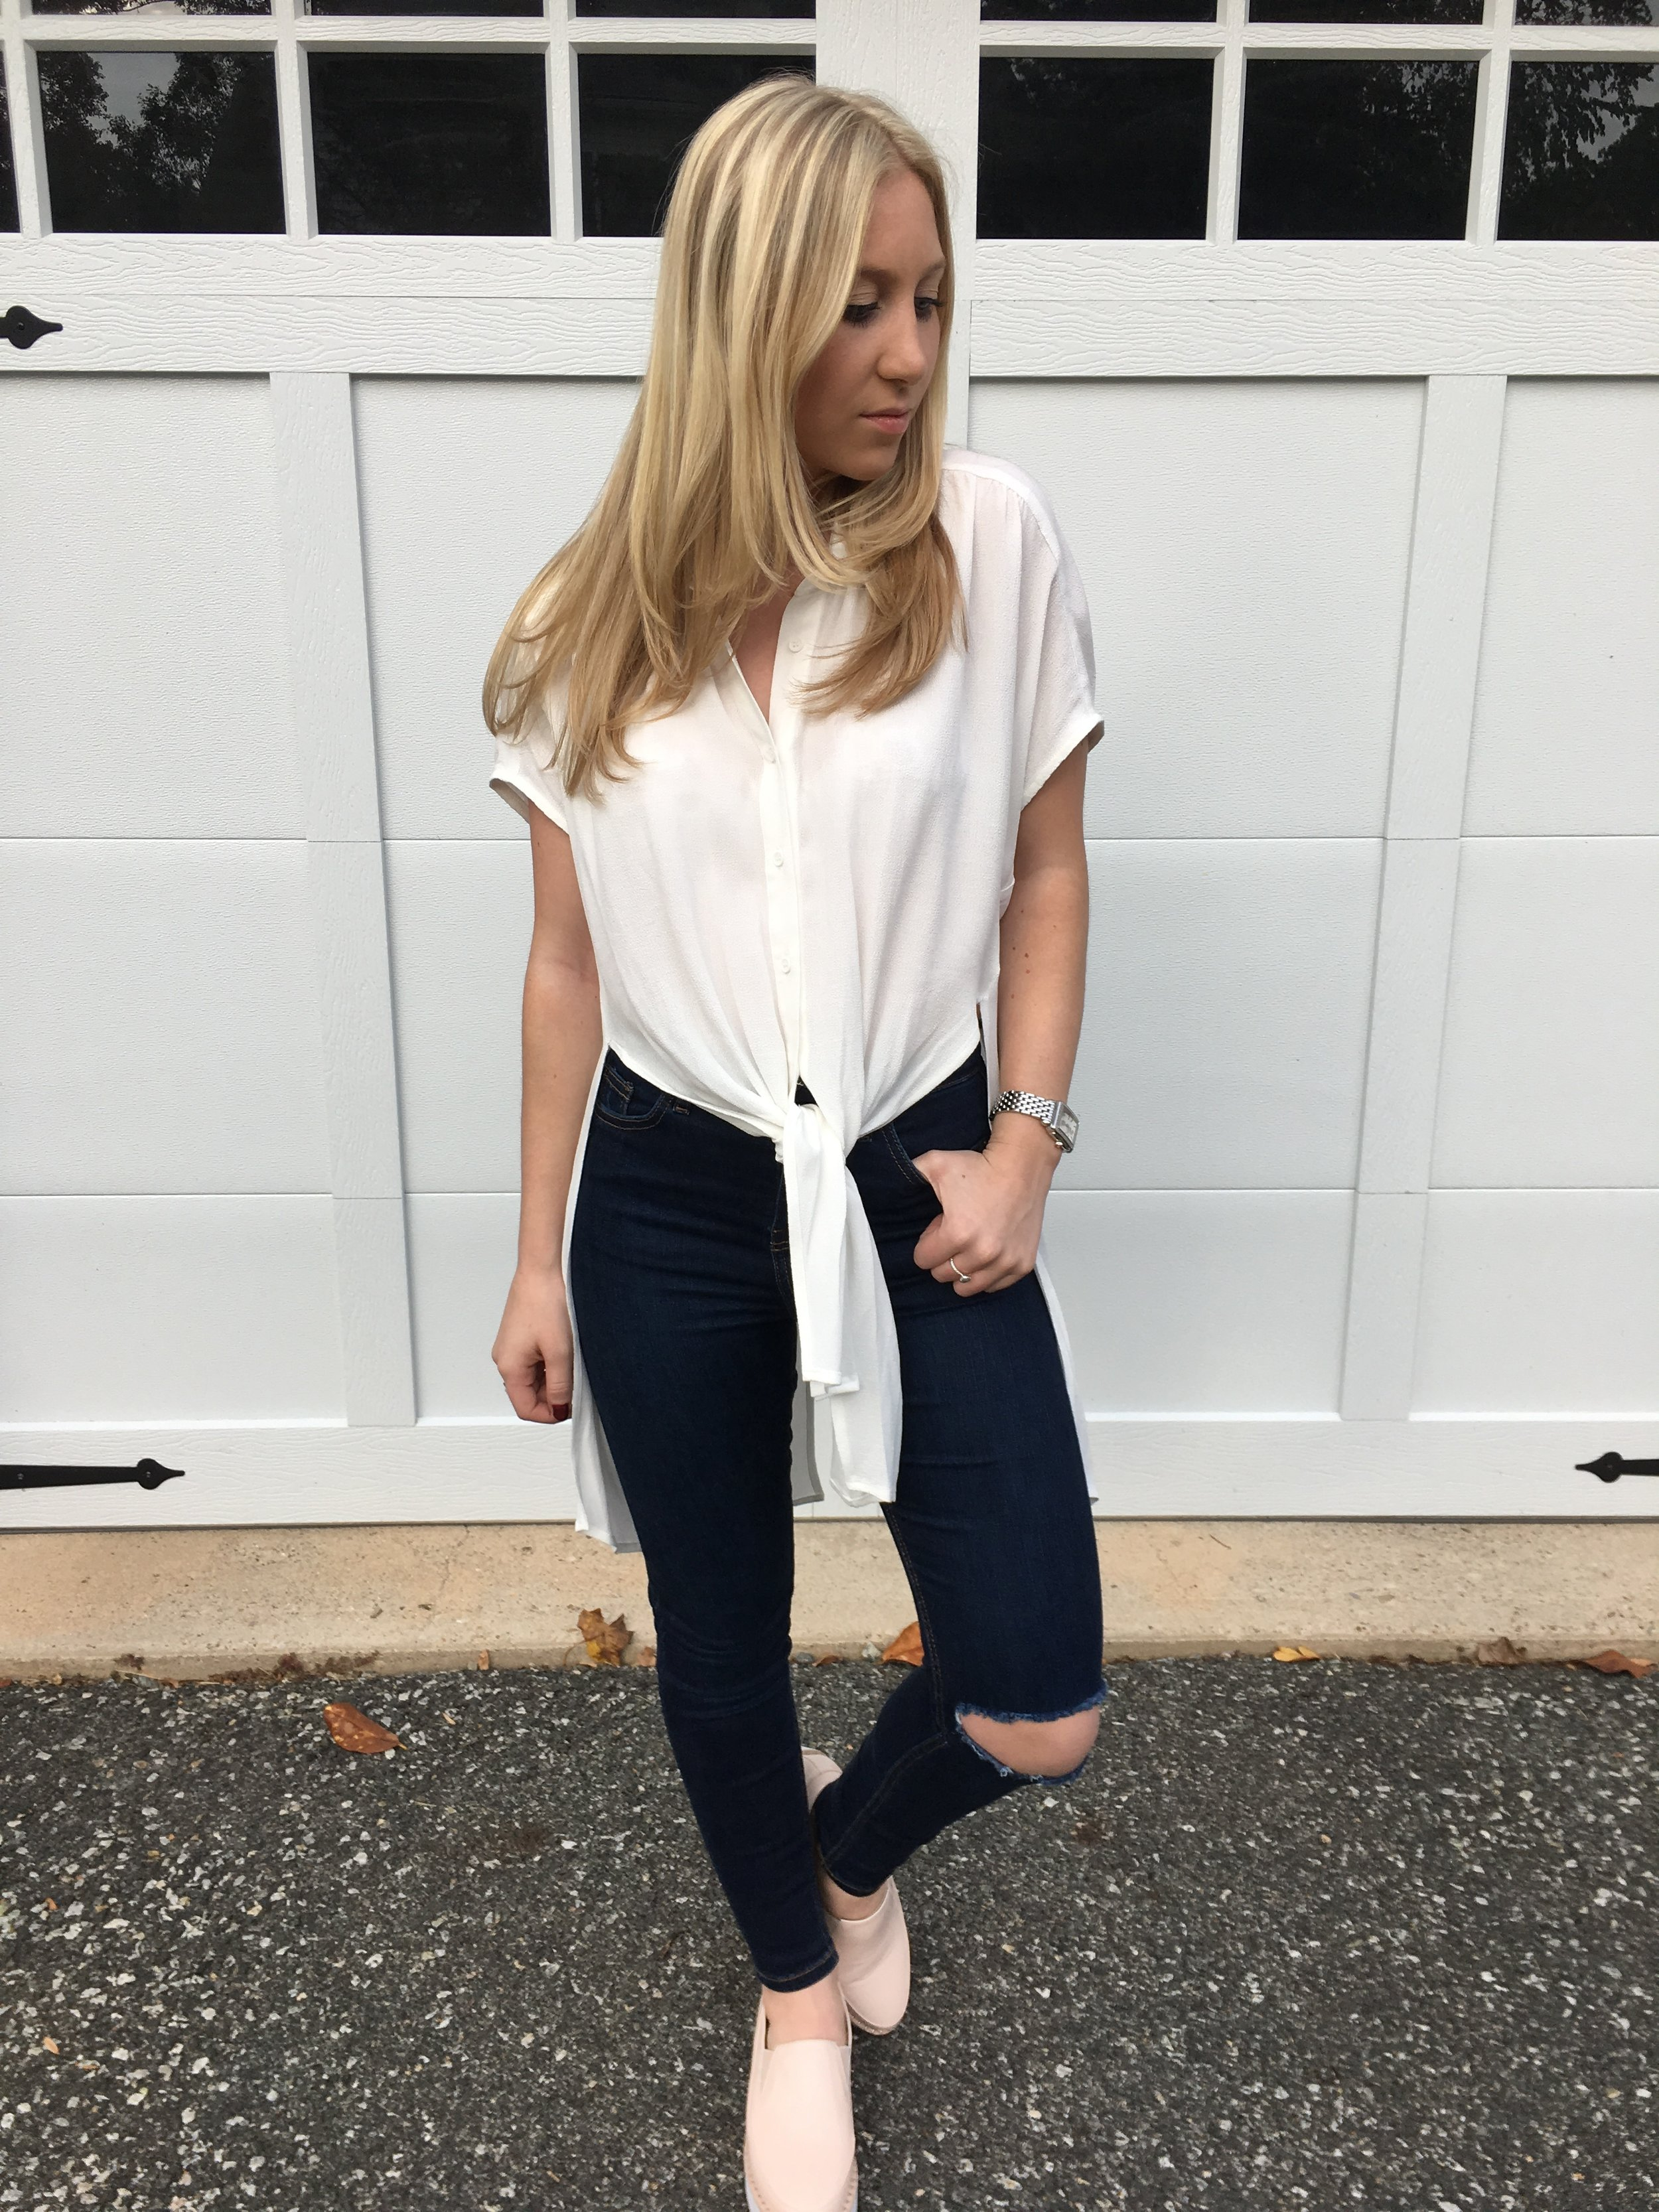 blush-sneakers-outfit-inspo-au-courant-life.jpg